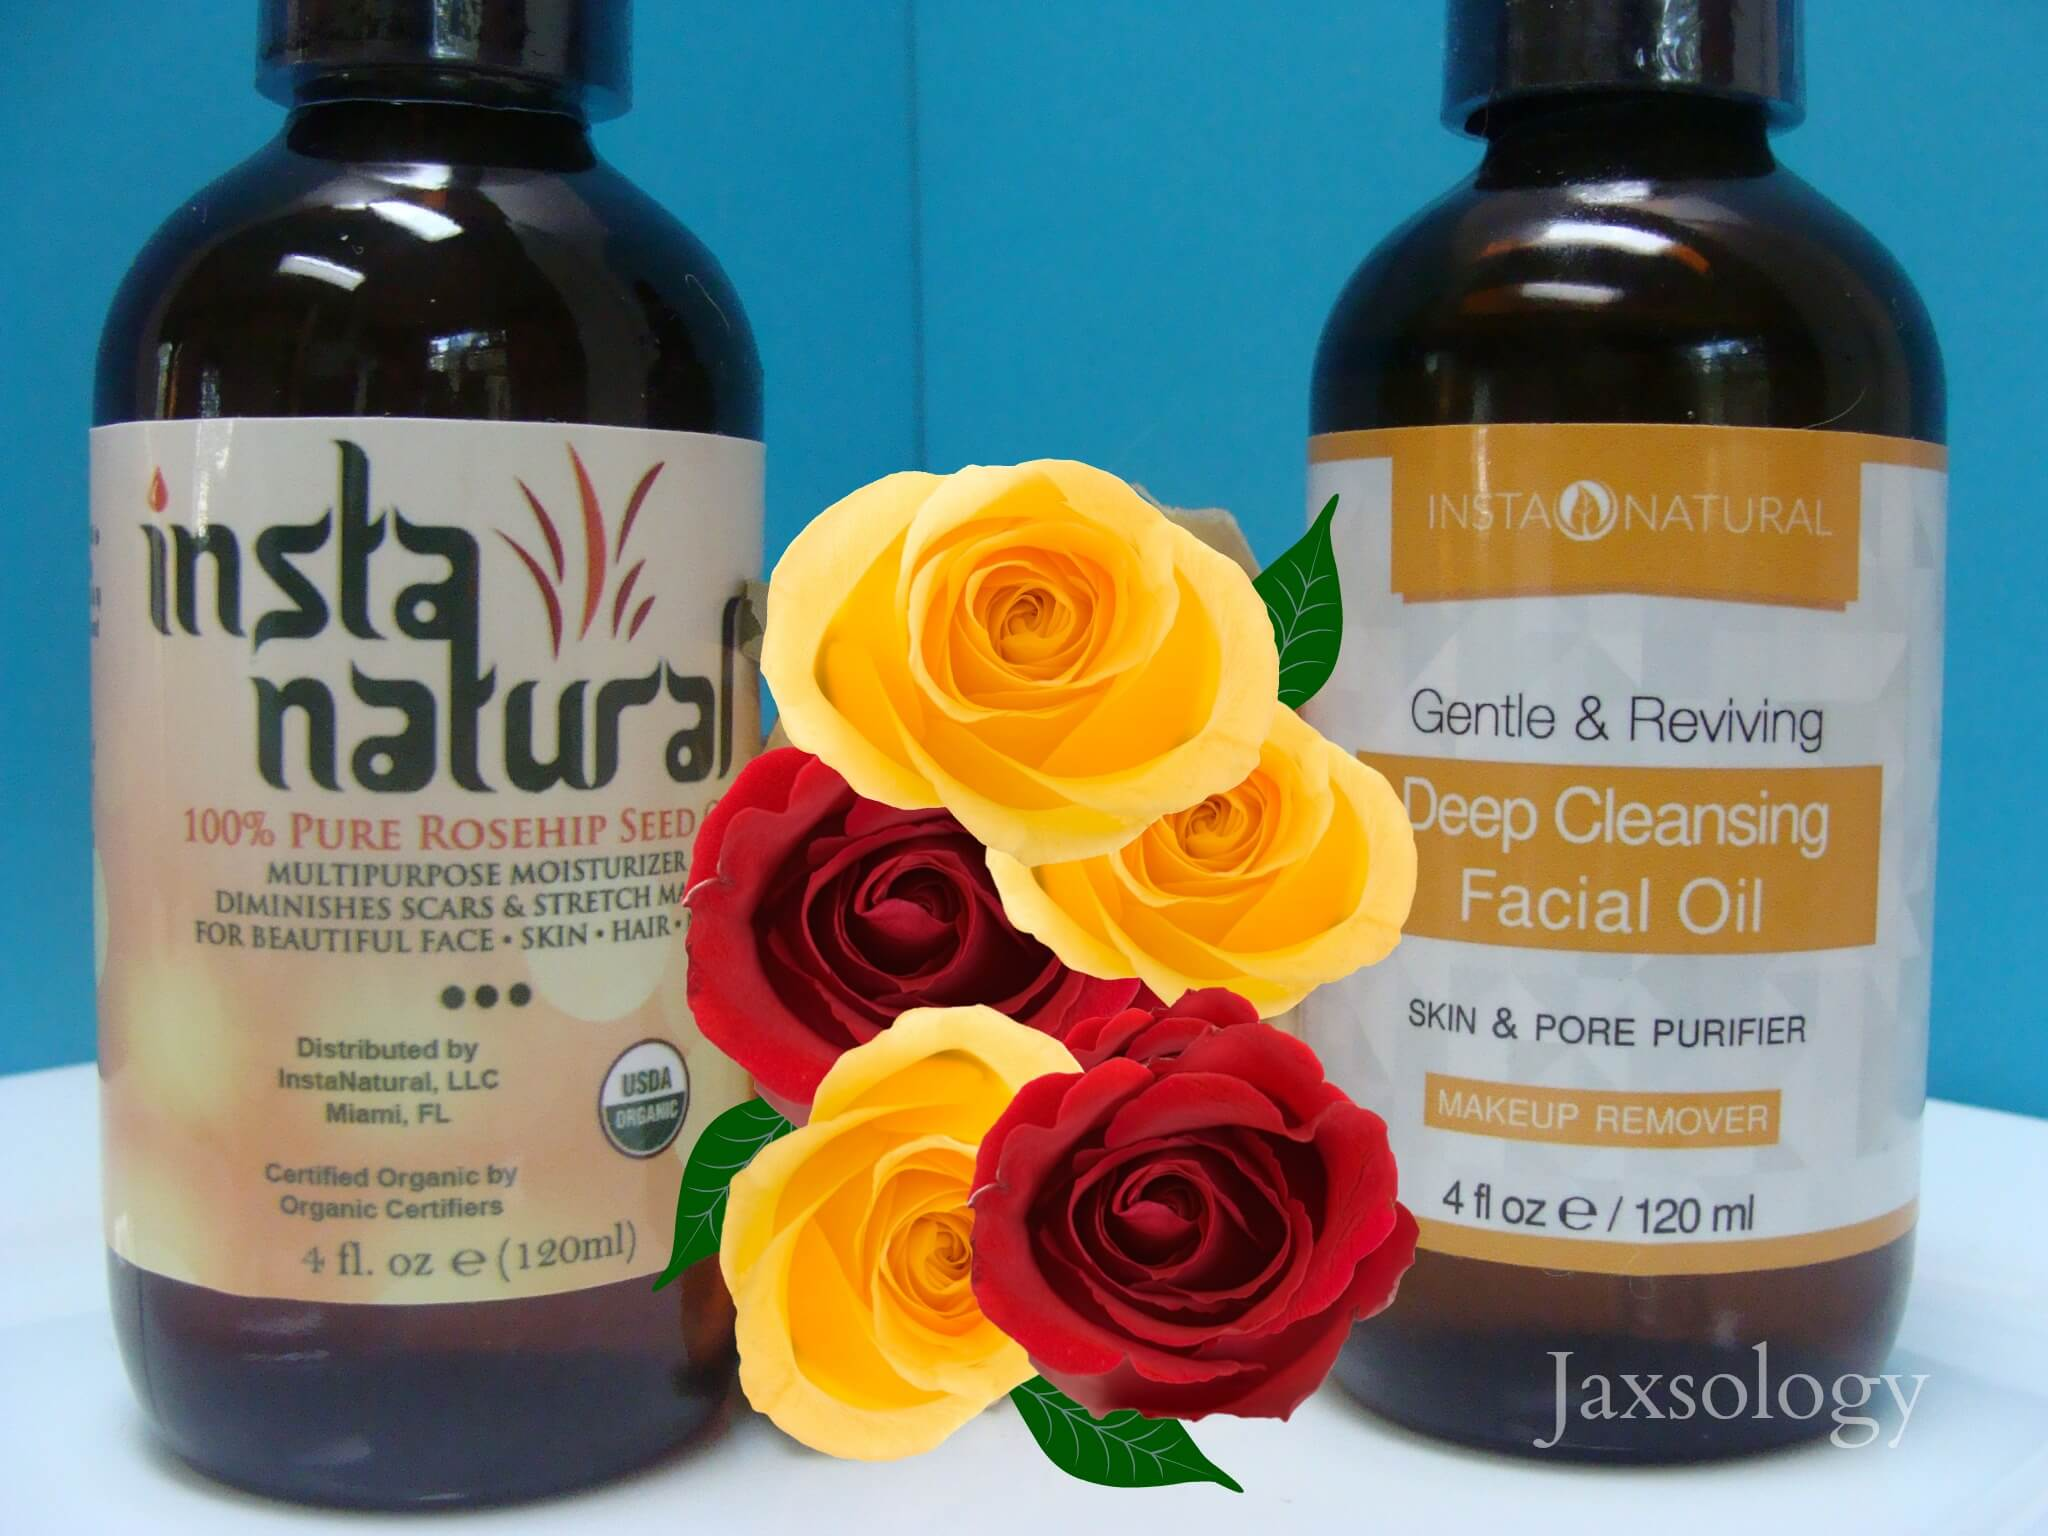 InstaNatural Deep Cleansing Facial Oil and Rosehip Oil